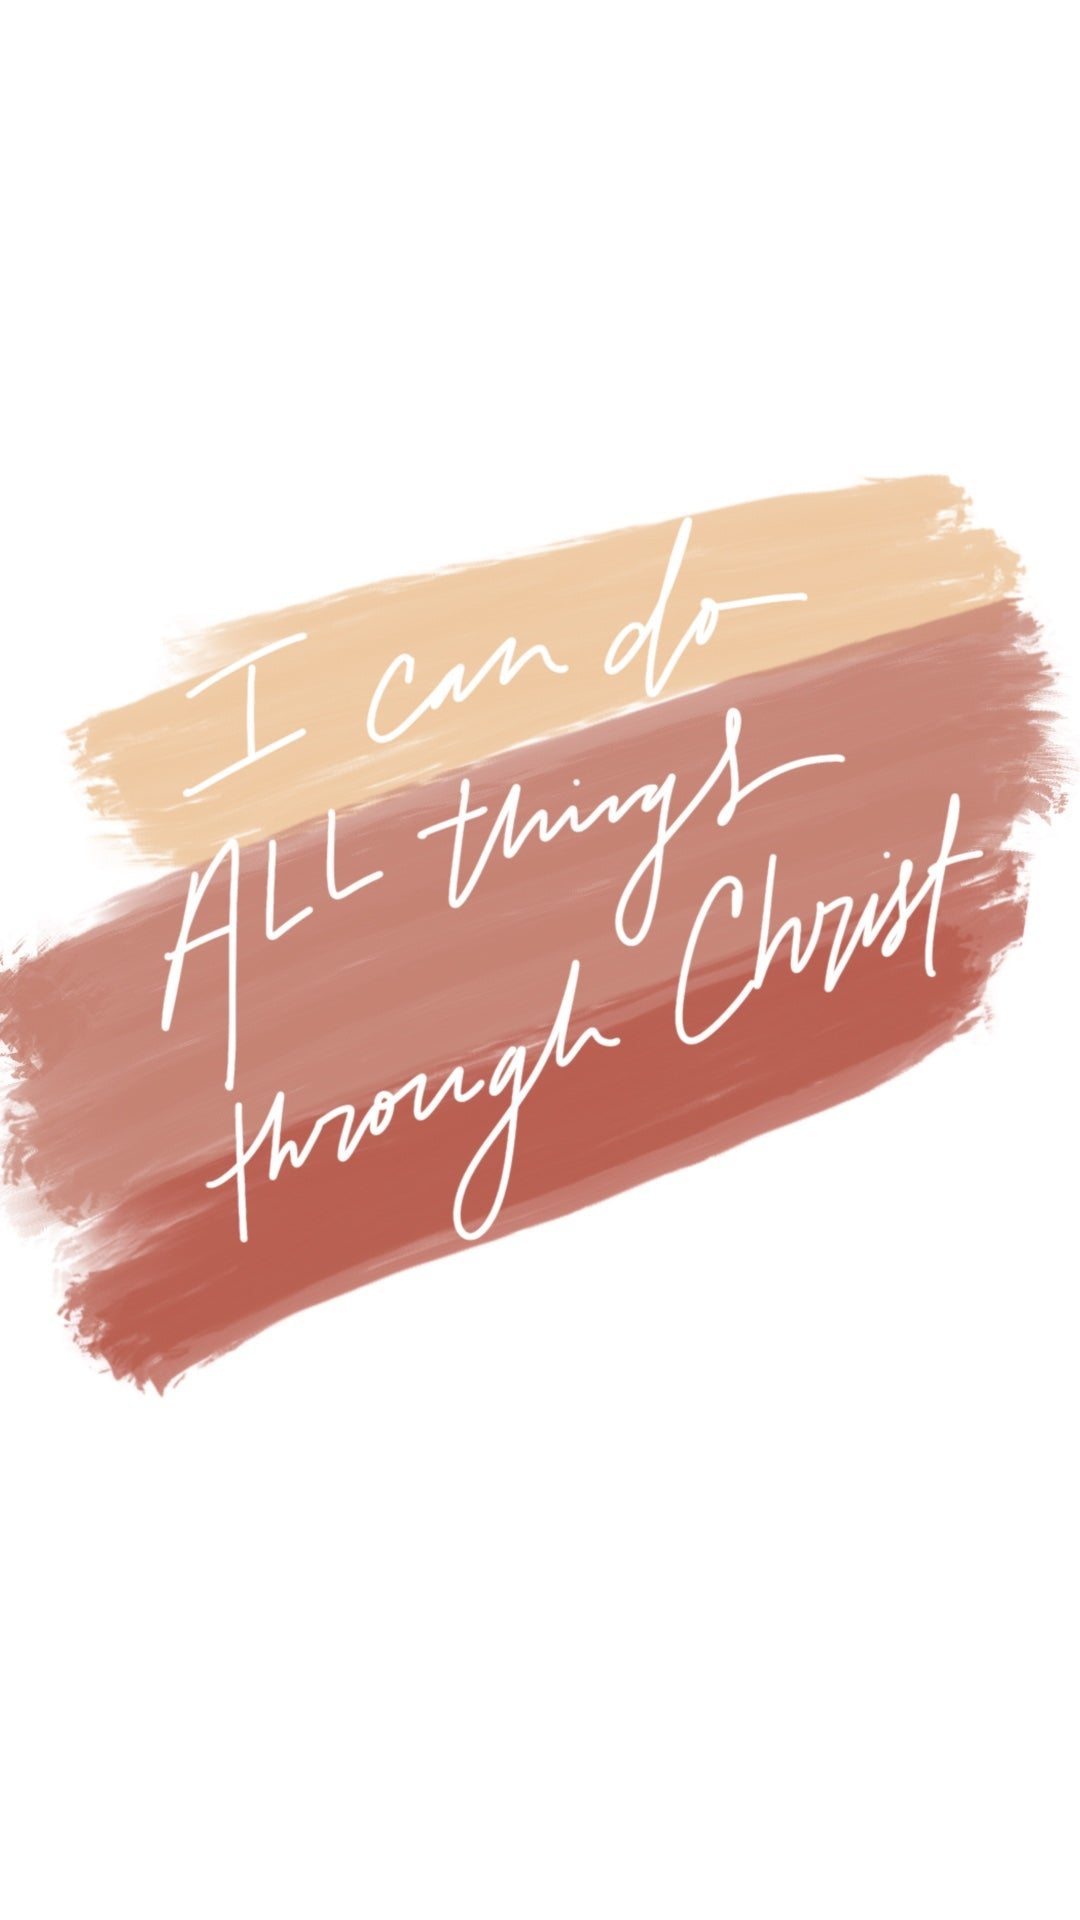 I can do all things through Christ Christian iPhone Wallpaper